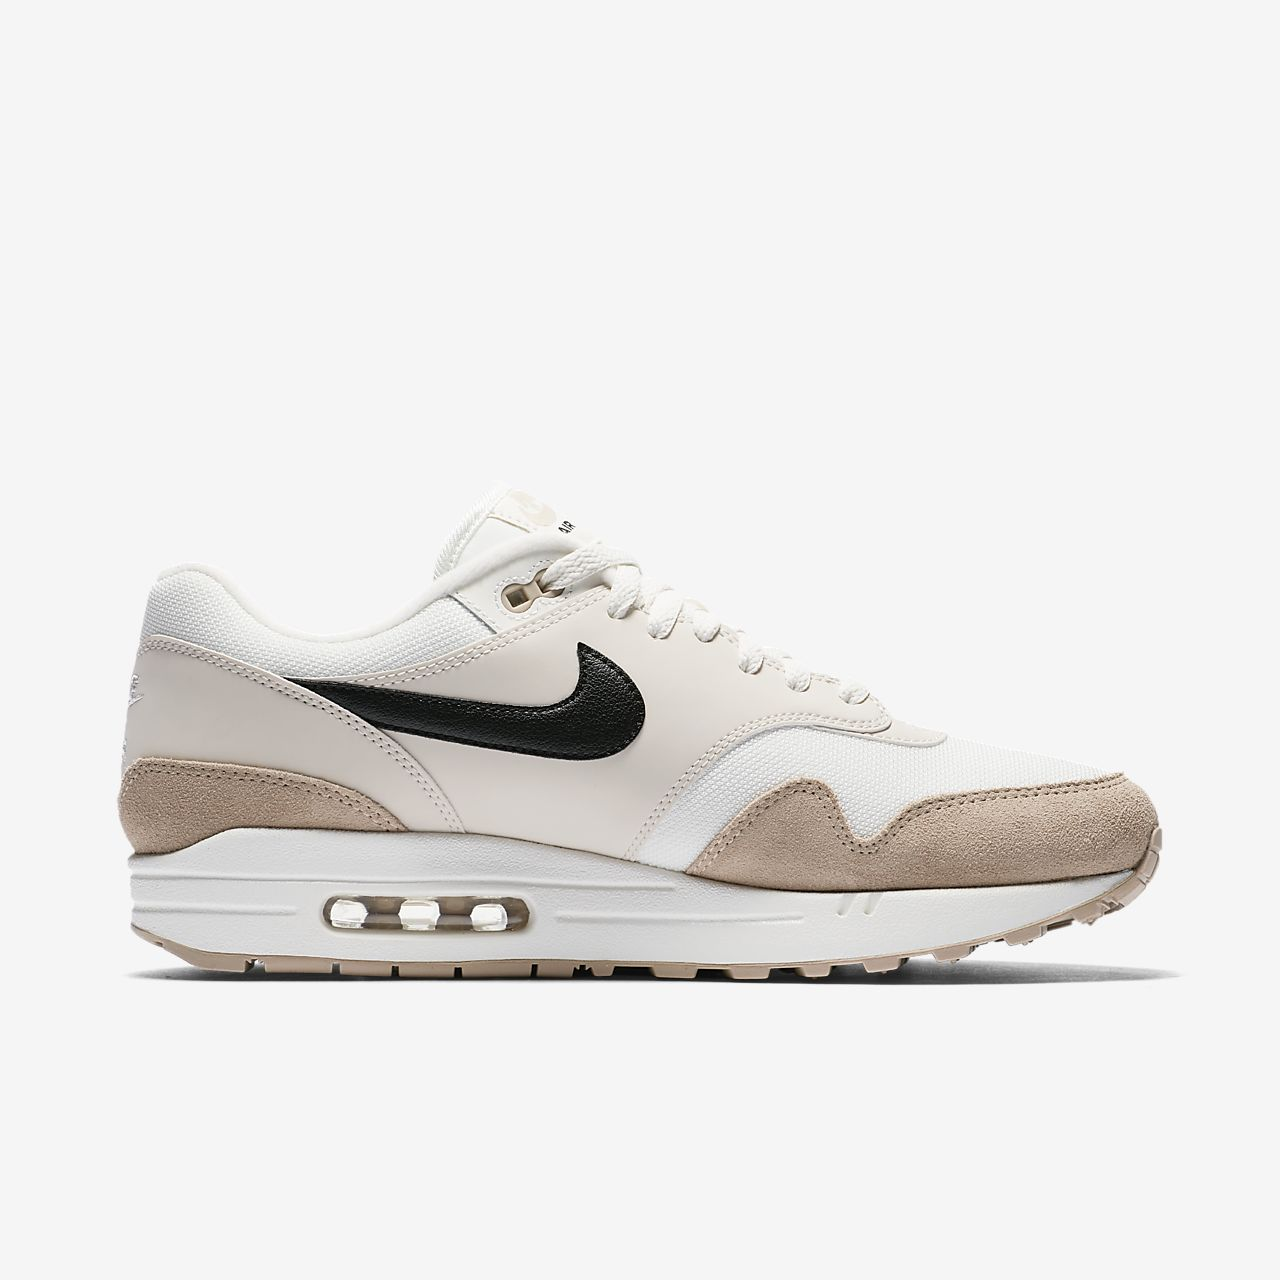 ... Nike Air Max 1 Men's Shoe